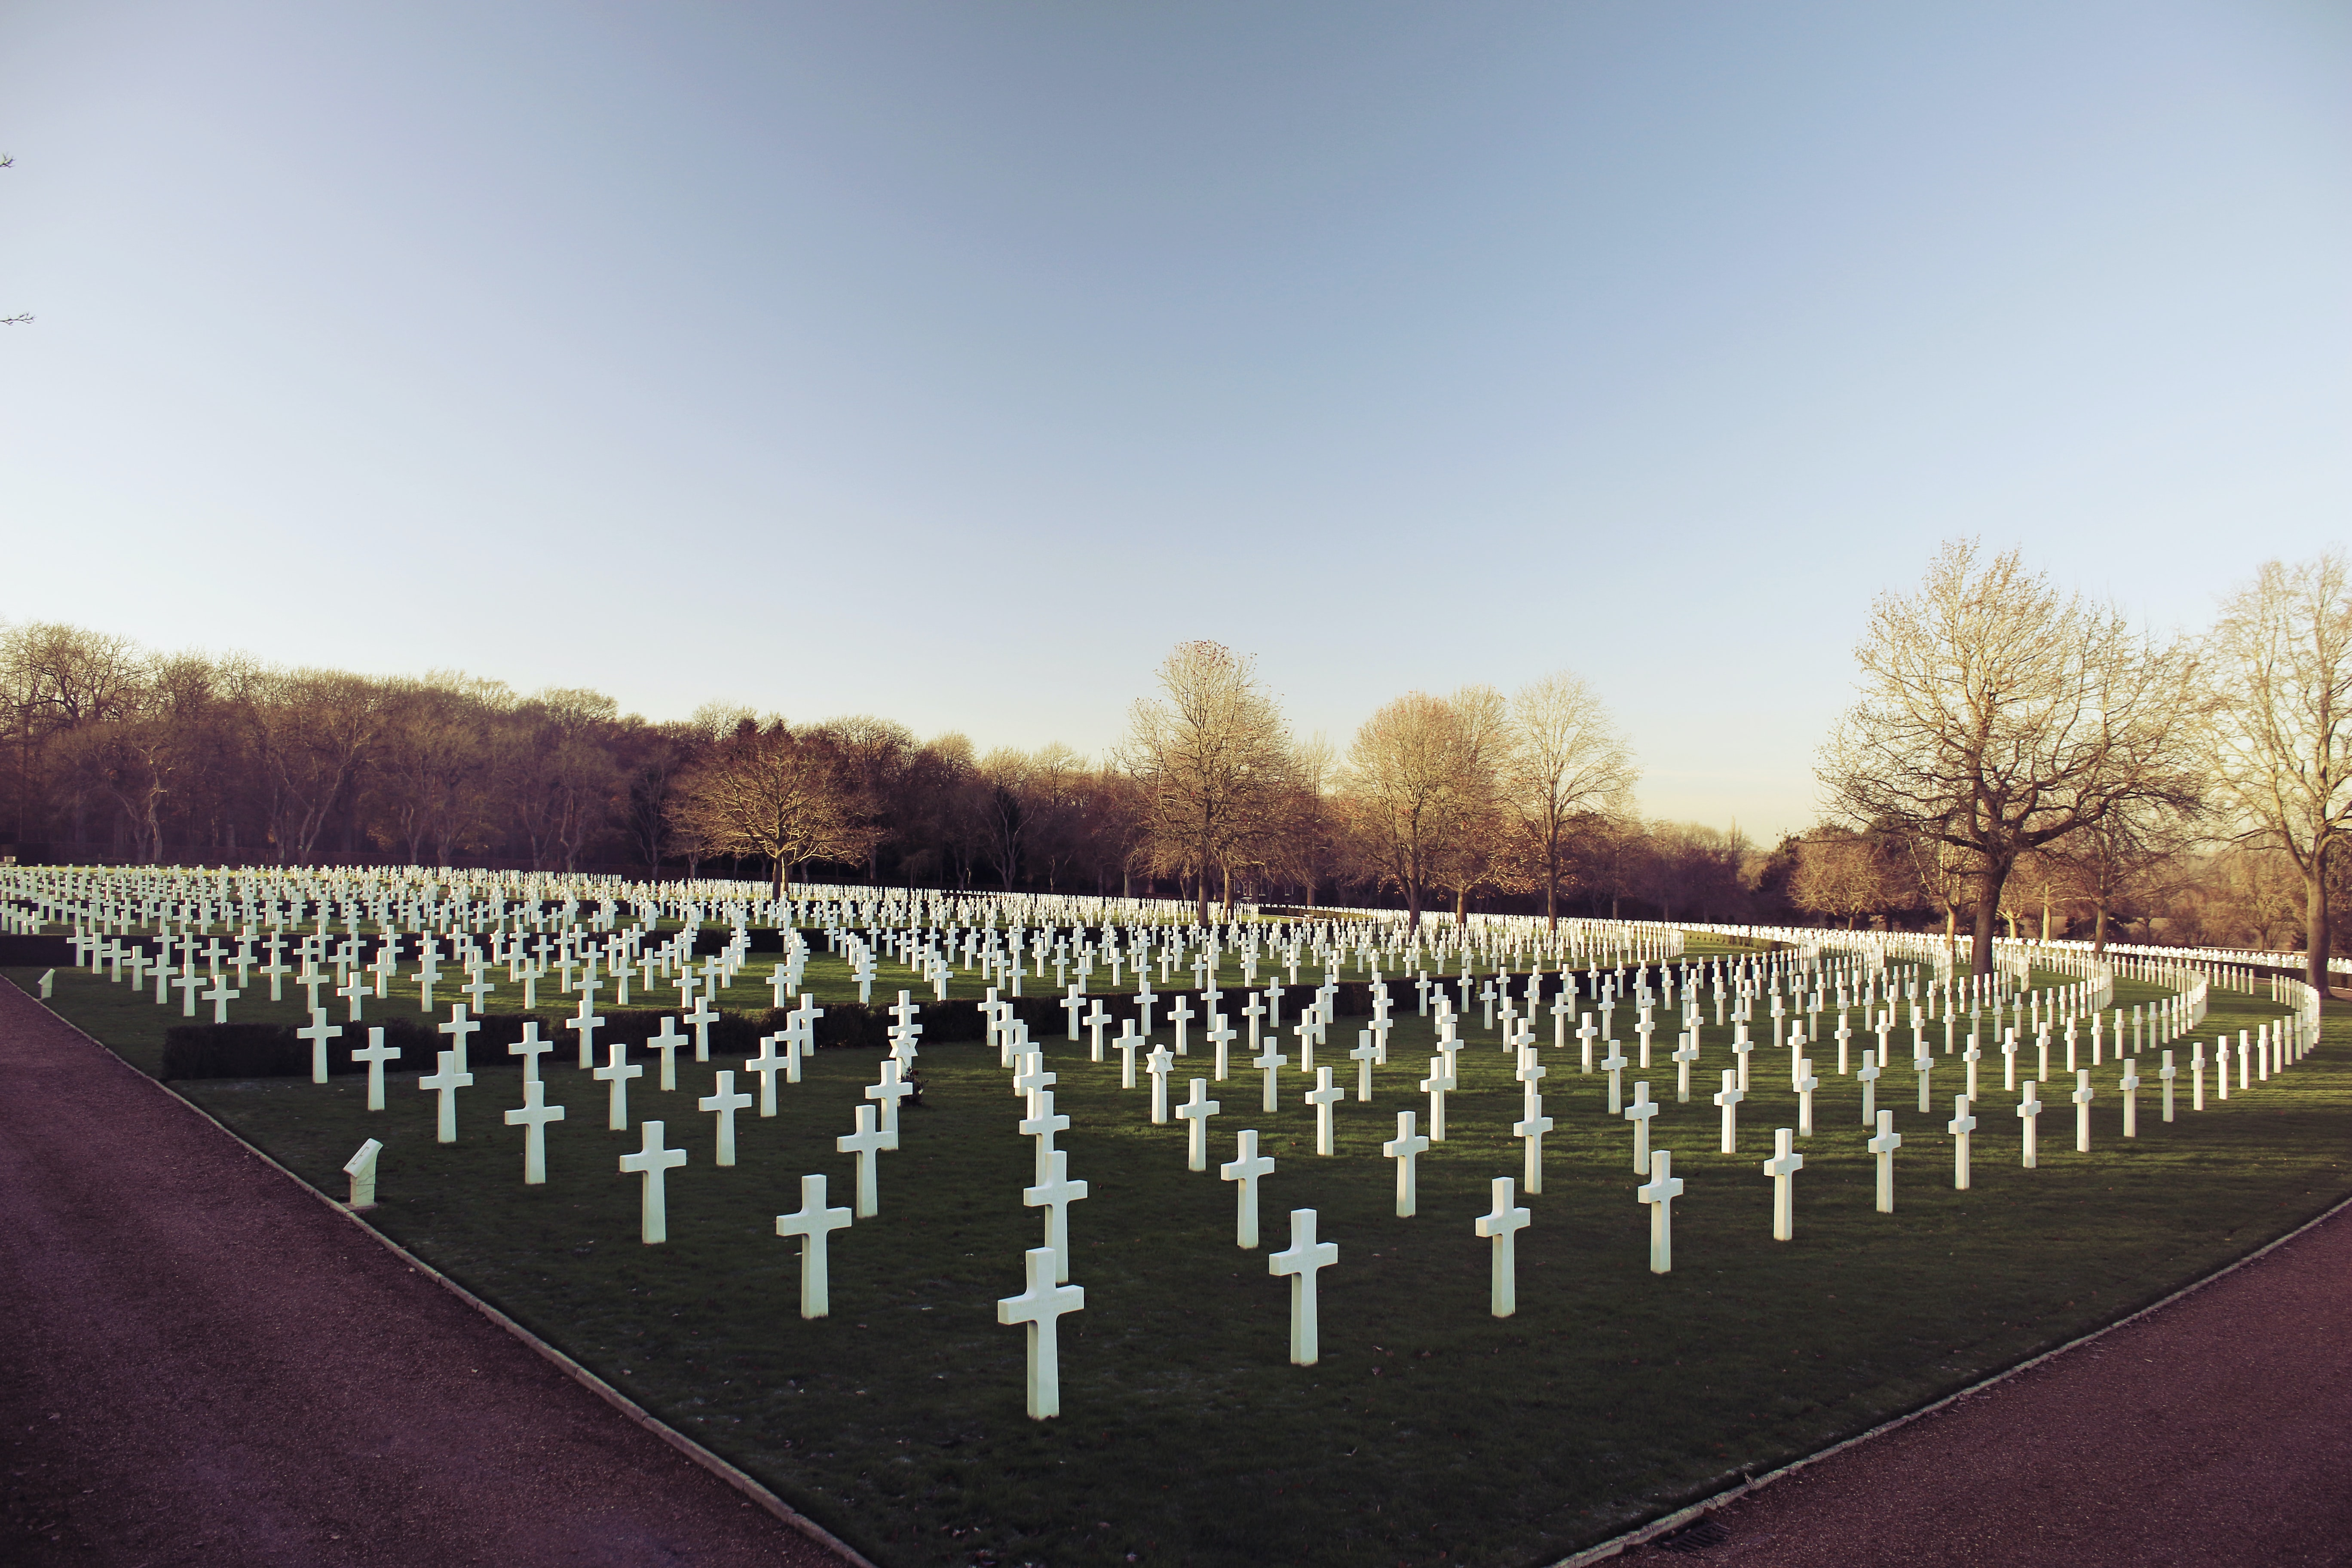 landscape photo of cemetery during daytime